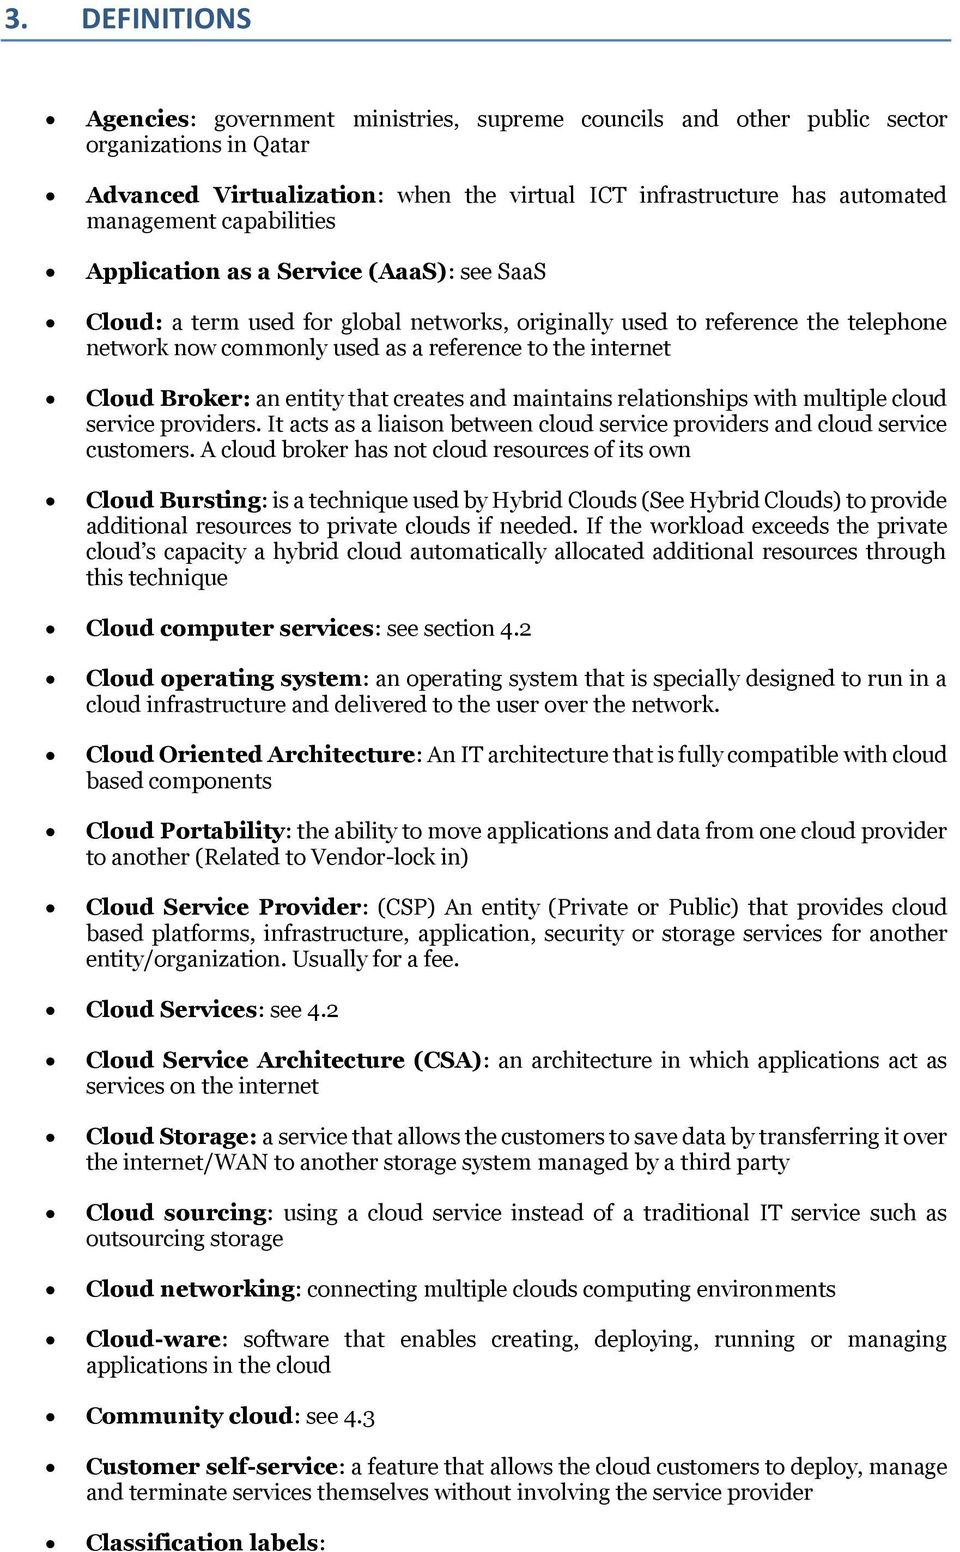 Cloud Broker: an entity that creates and maintains relationships with multiple cloud service providers. It acts as a liaison between cloud service providers and cloud service customers.